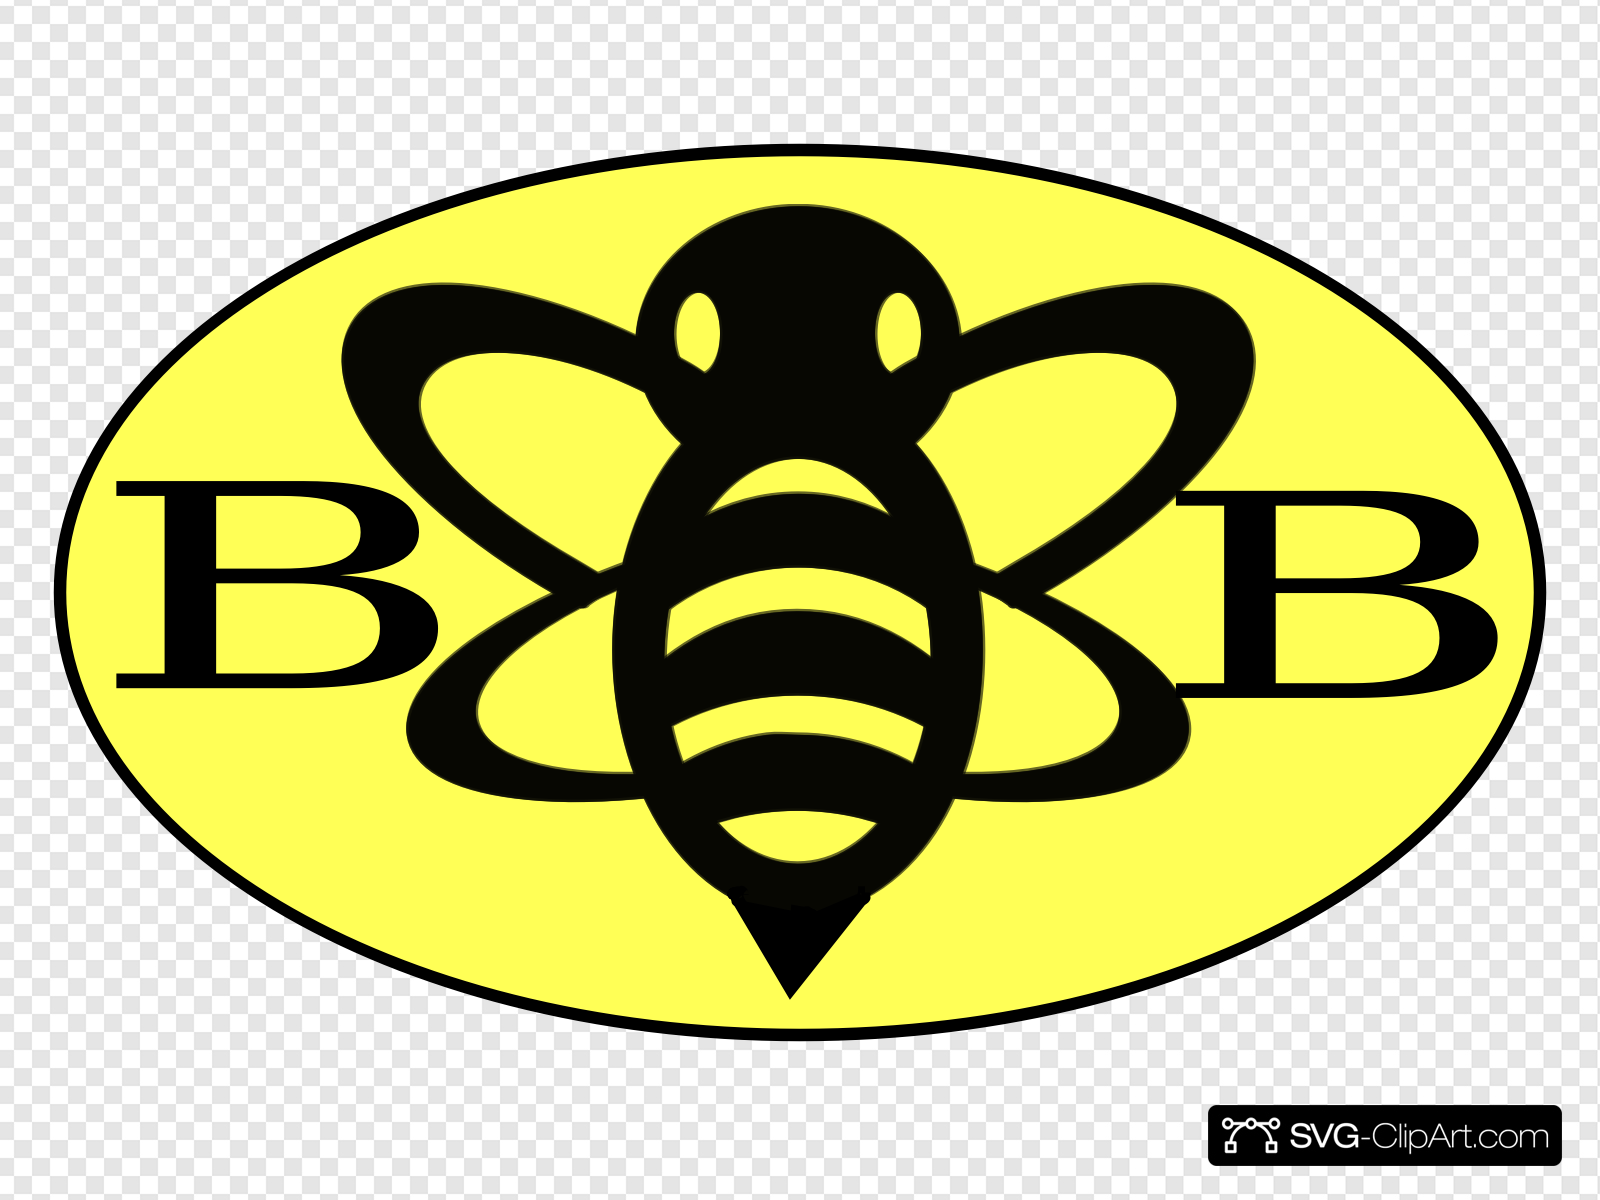 Bumble Bee Logo Clip art, Icon and SVG.